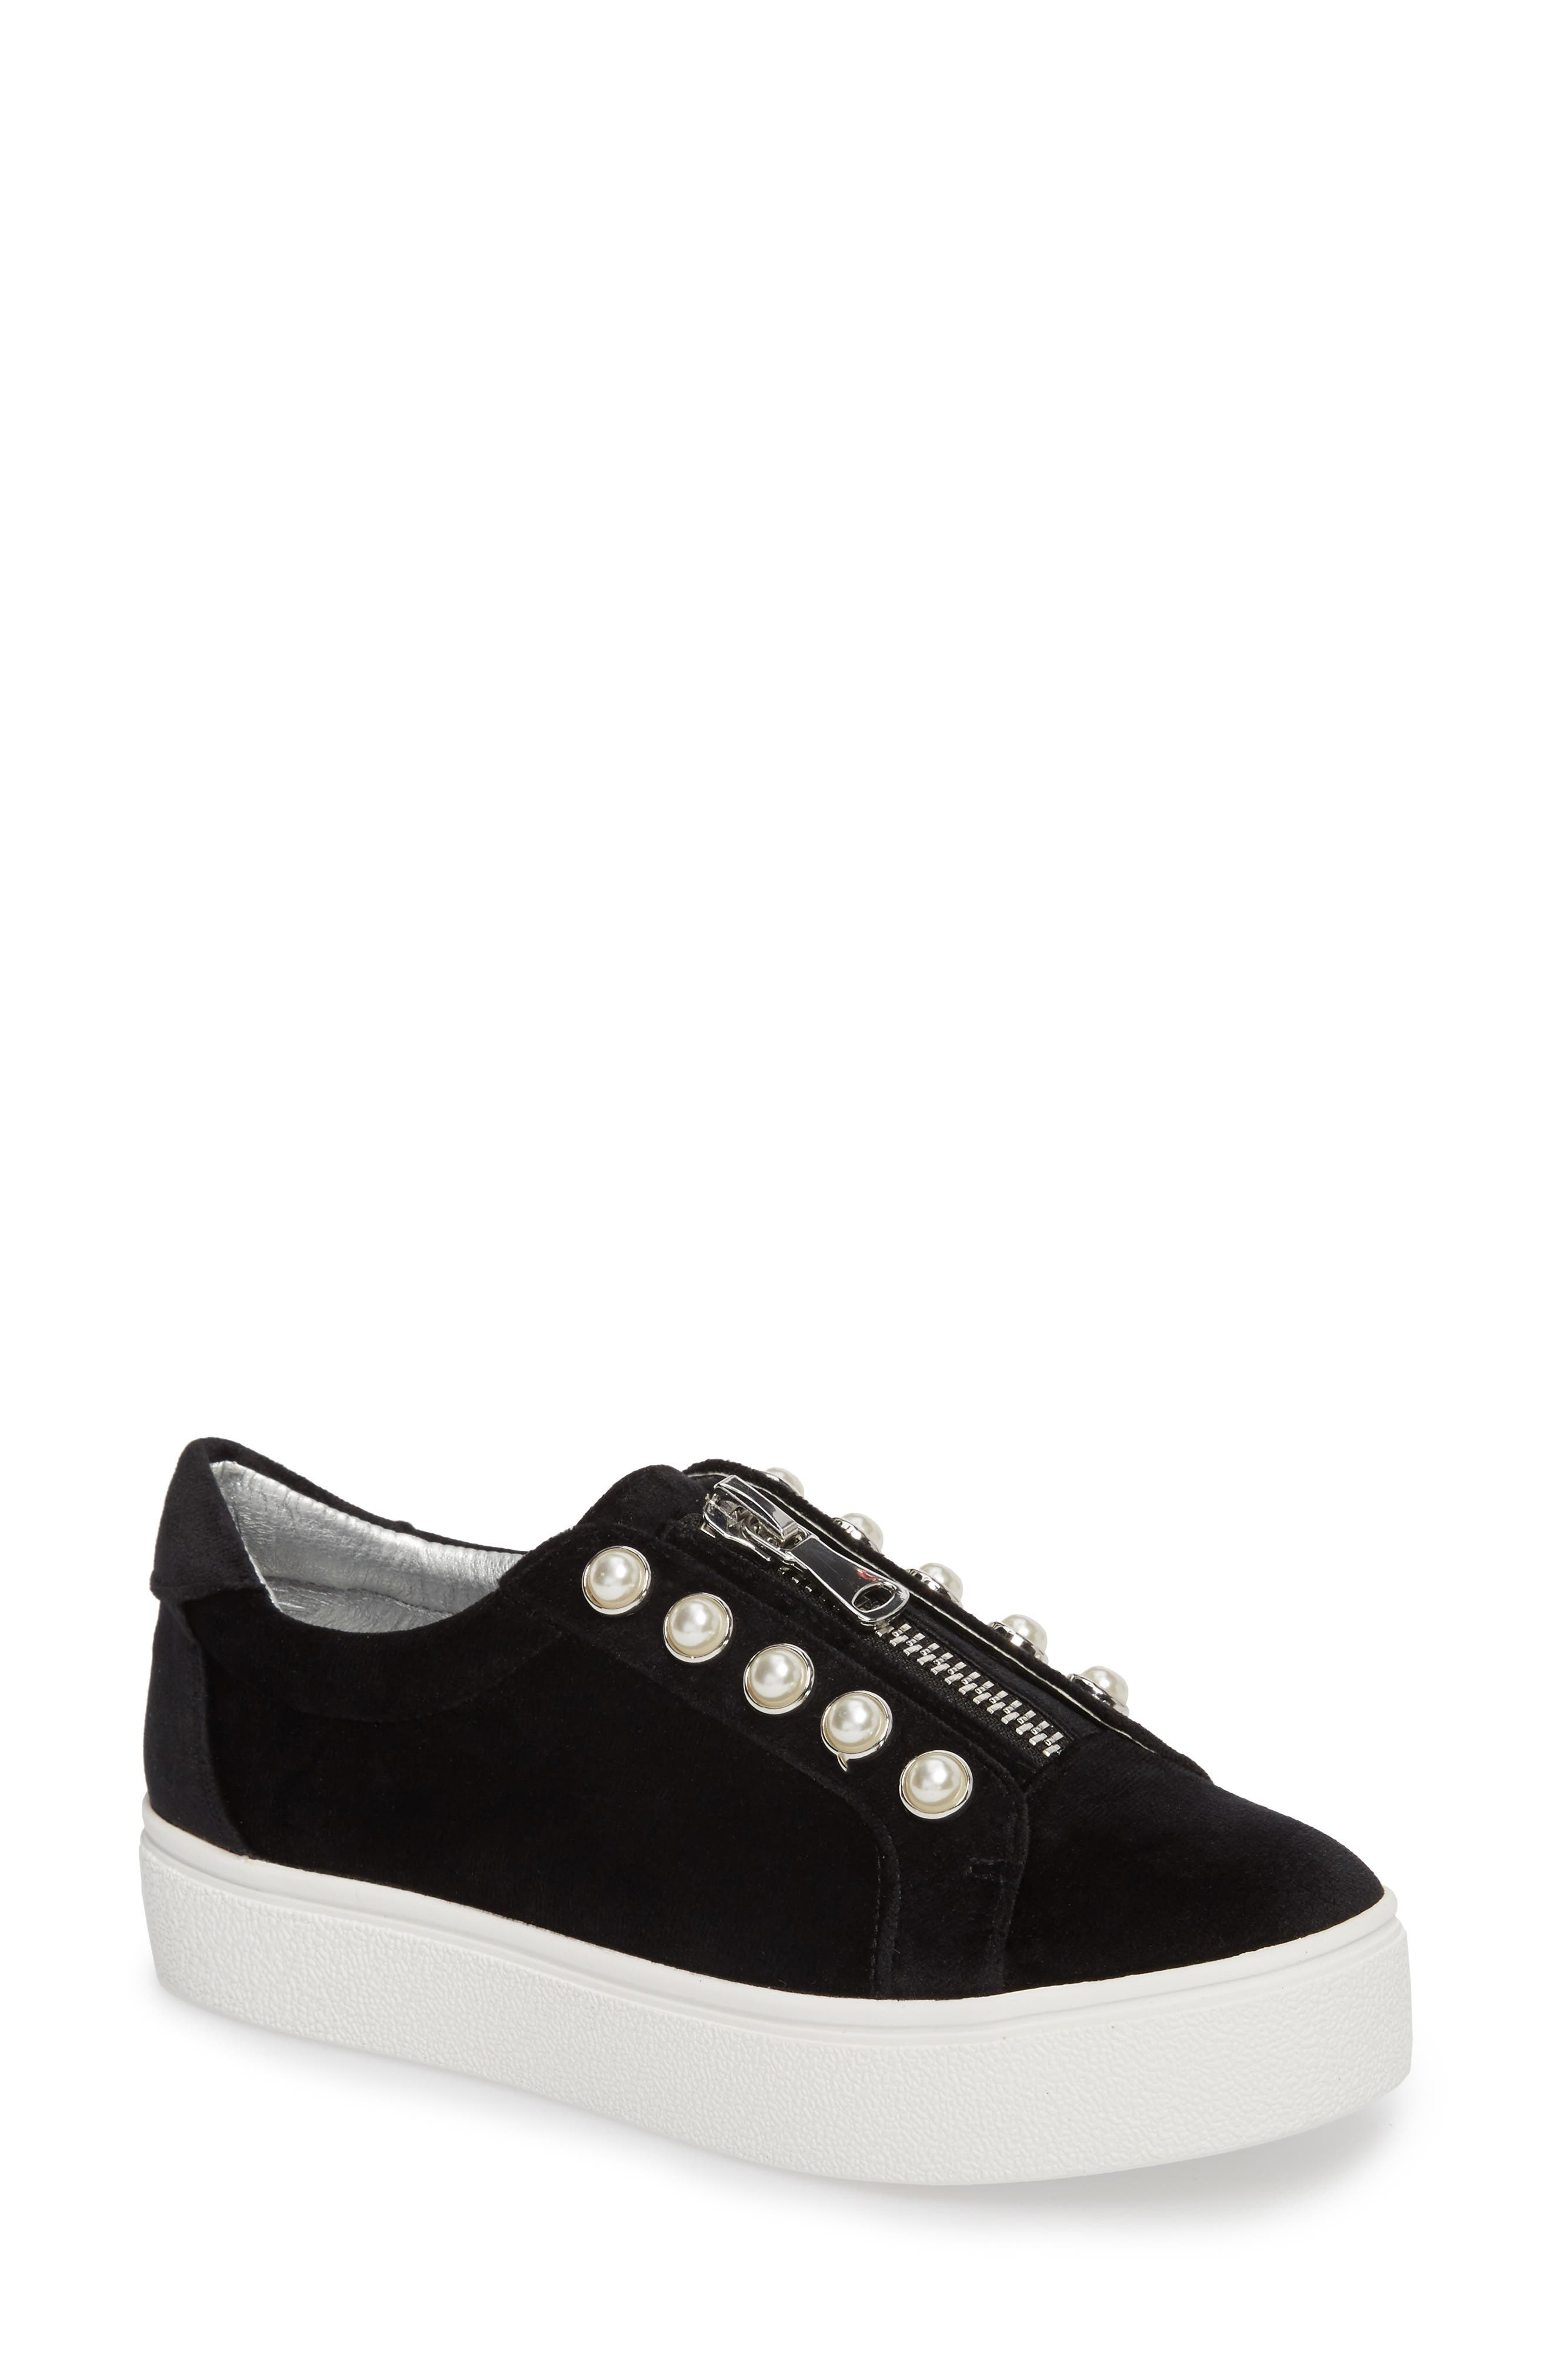 Lynn Embellished Platform Sneaker,                             Main thumbnail 1, color,                             Black Velvet